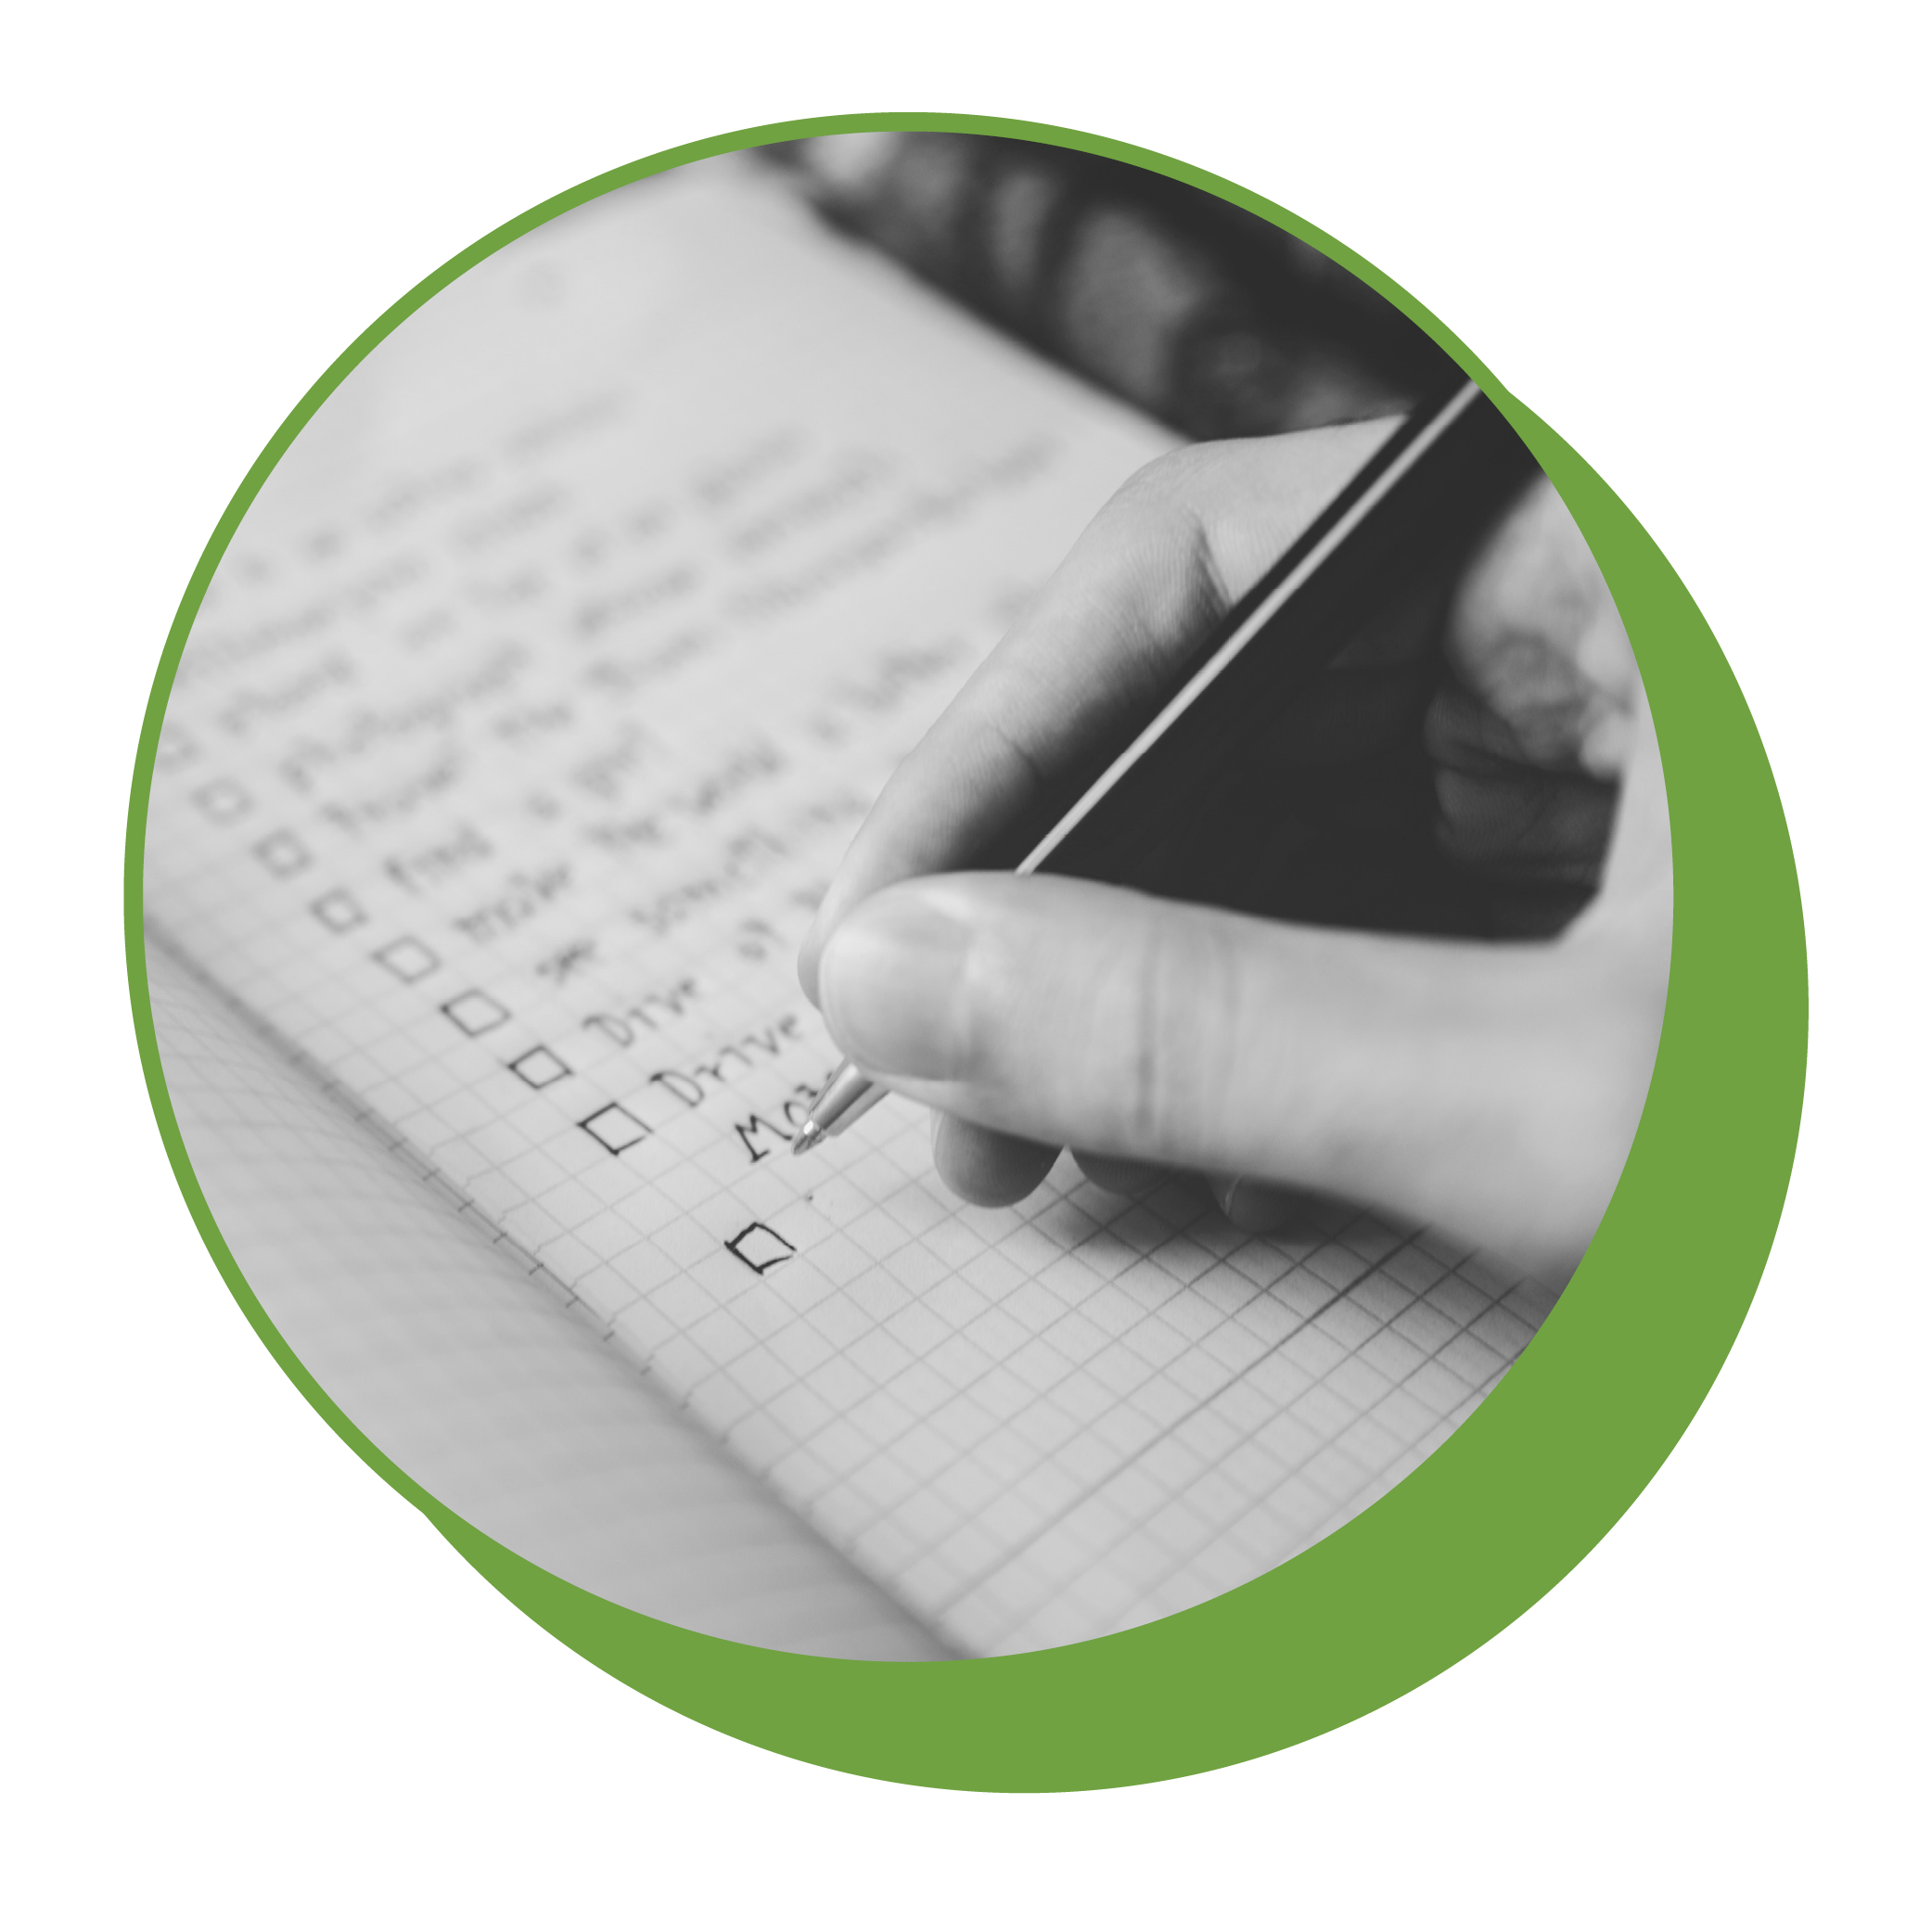 A hand holding a pen, creating a checklist in a notebook